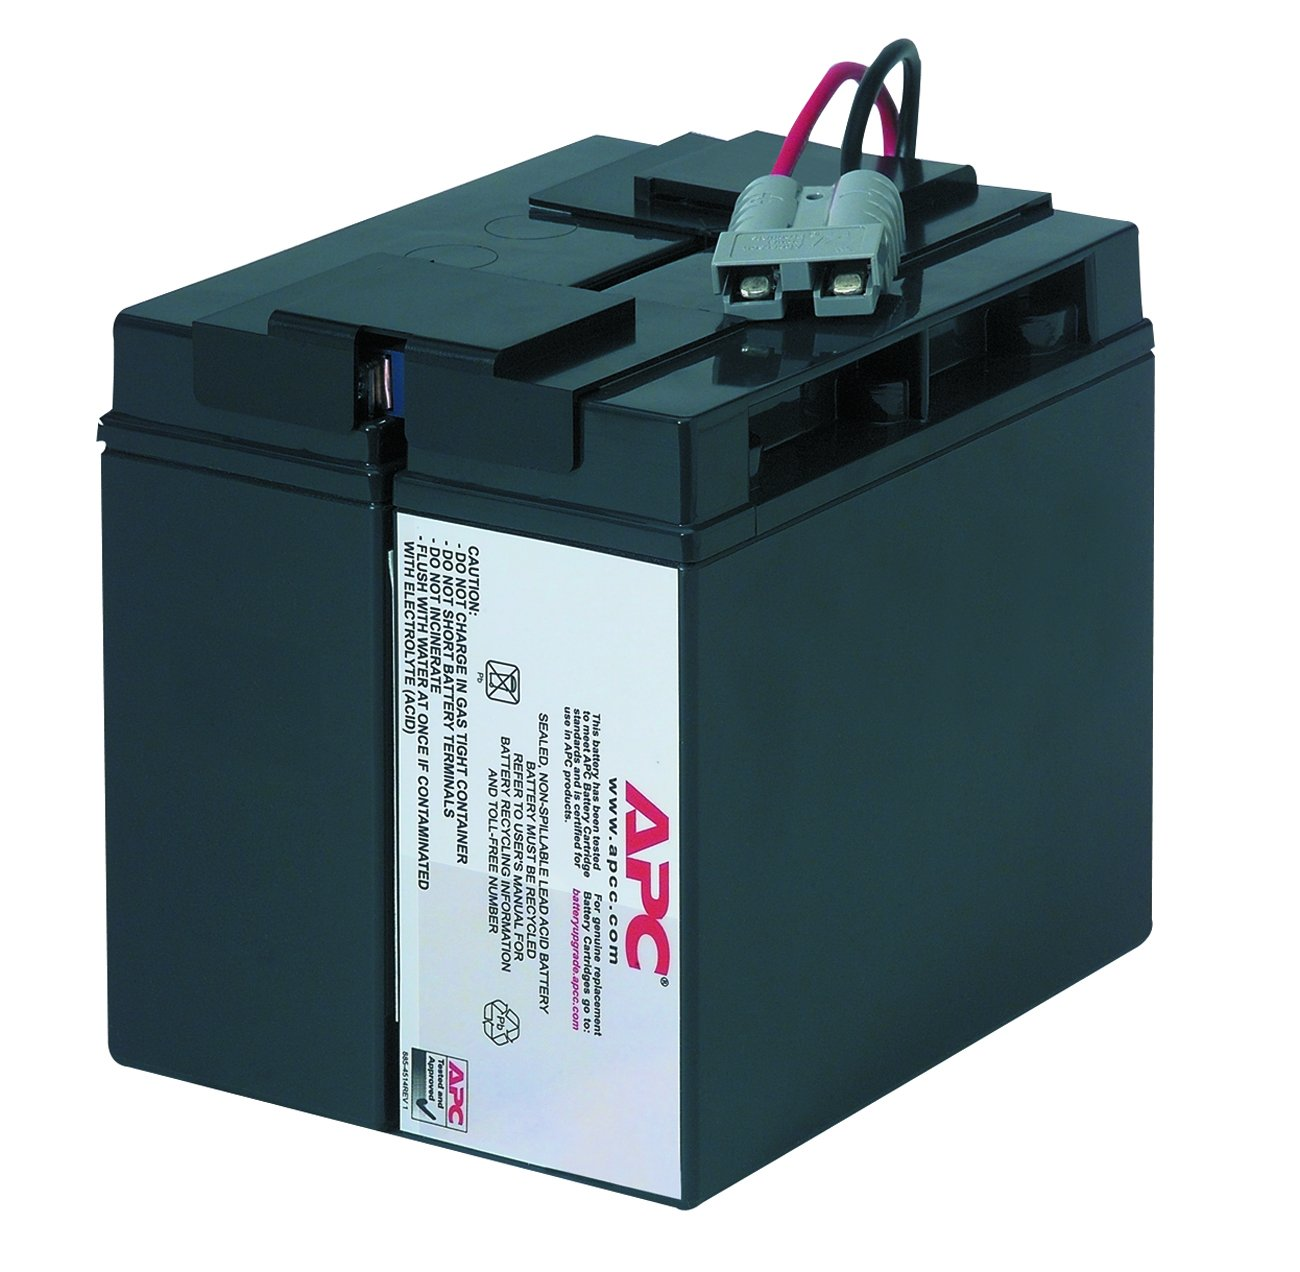 APC UPS Replacement Battery Cartridge for APC UPS Model SMT1500 and select others (RBC7) by APC